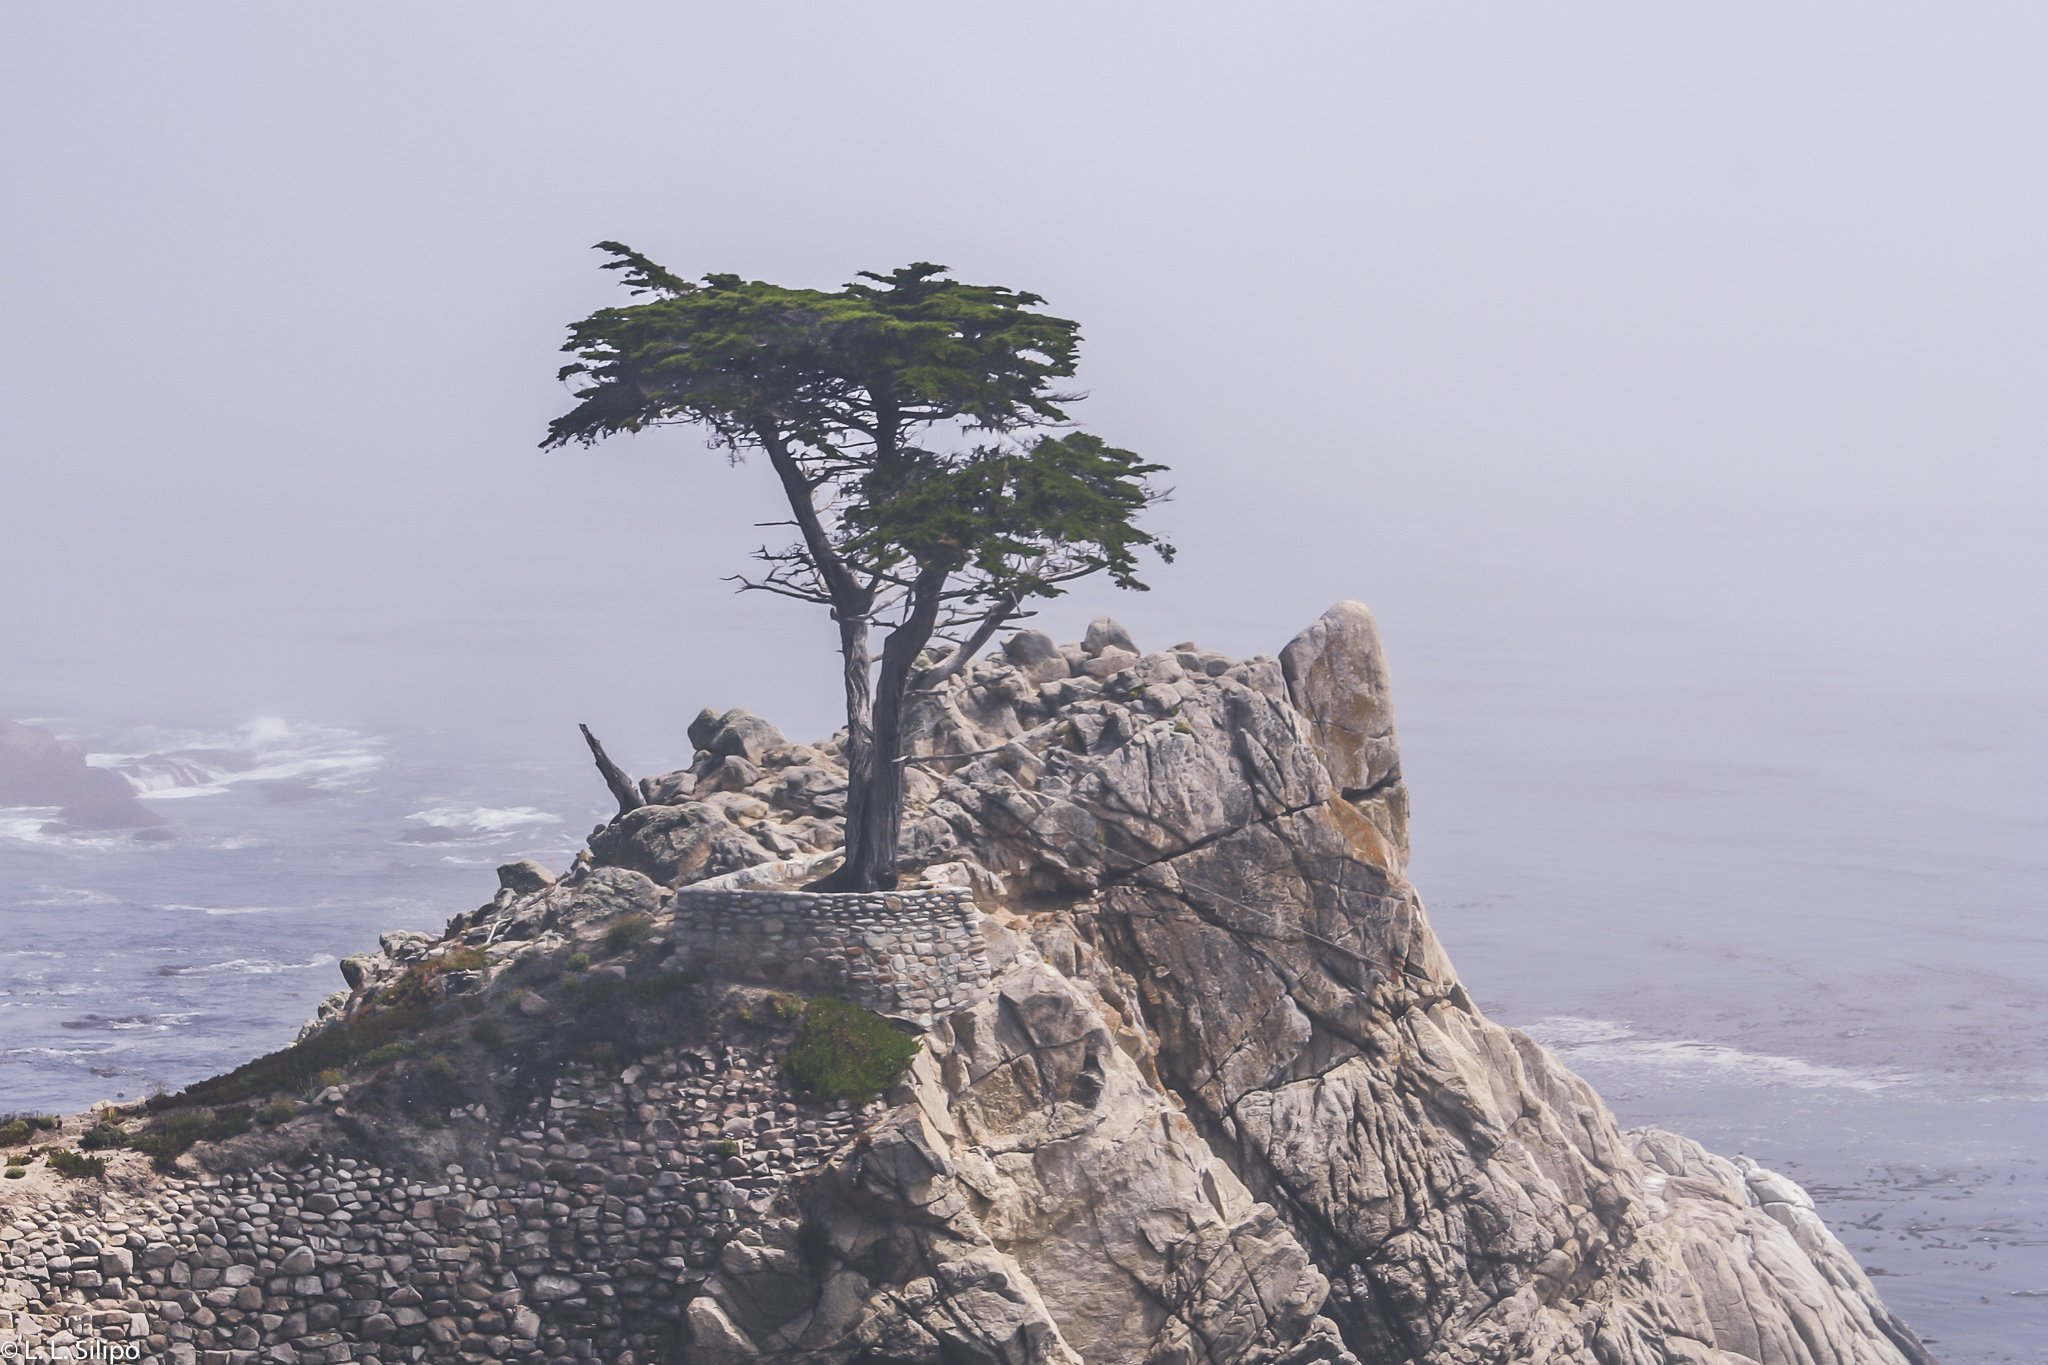 California, Cypress, Lone, Monterey, american, coastal, landscape, monterey county, nature, ocean, scenic, seashore, travel, tree, usa